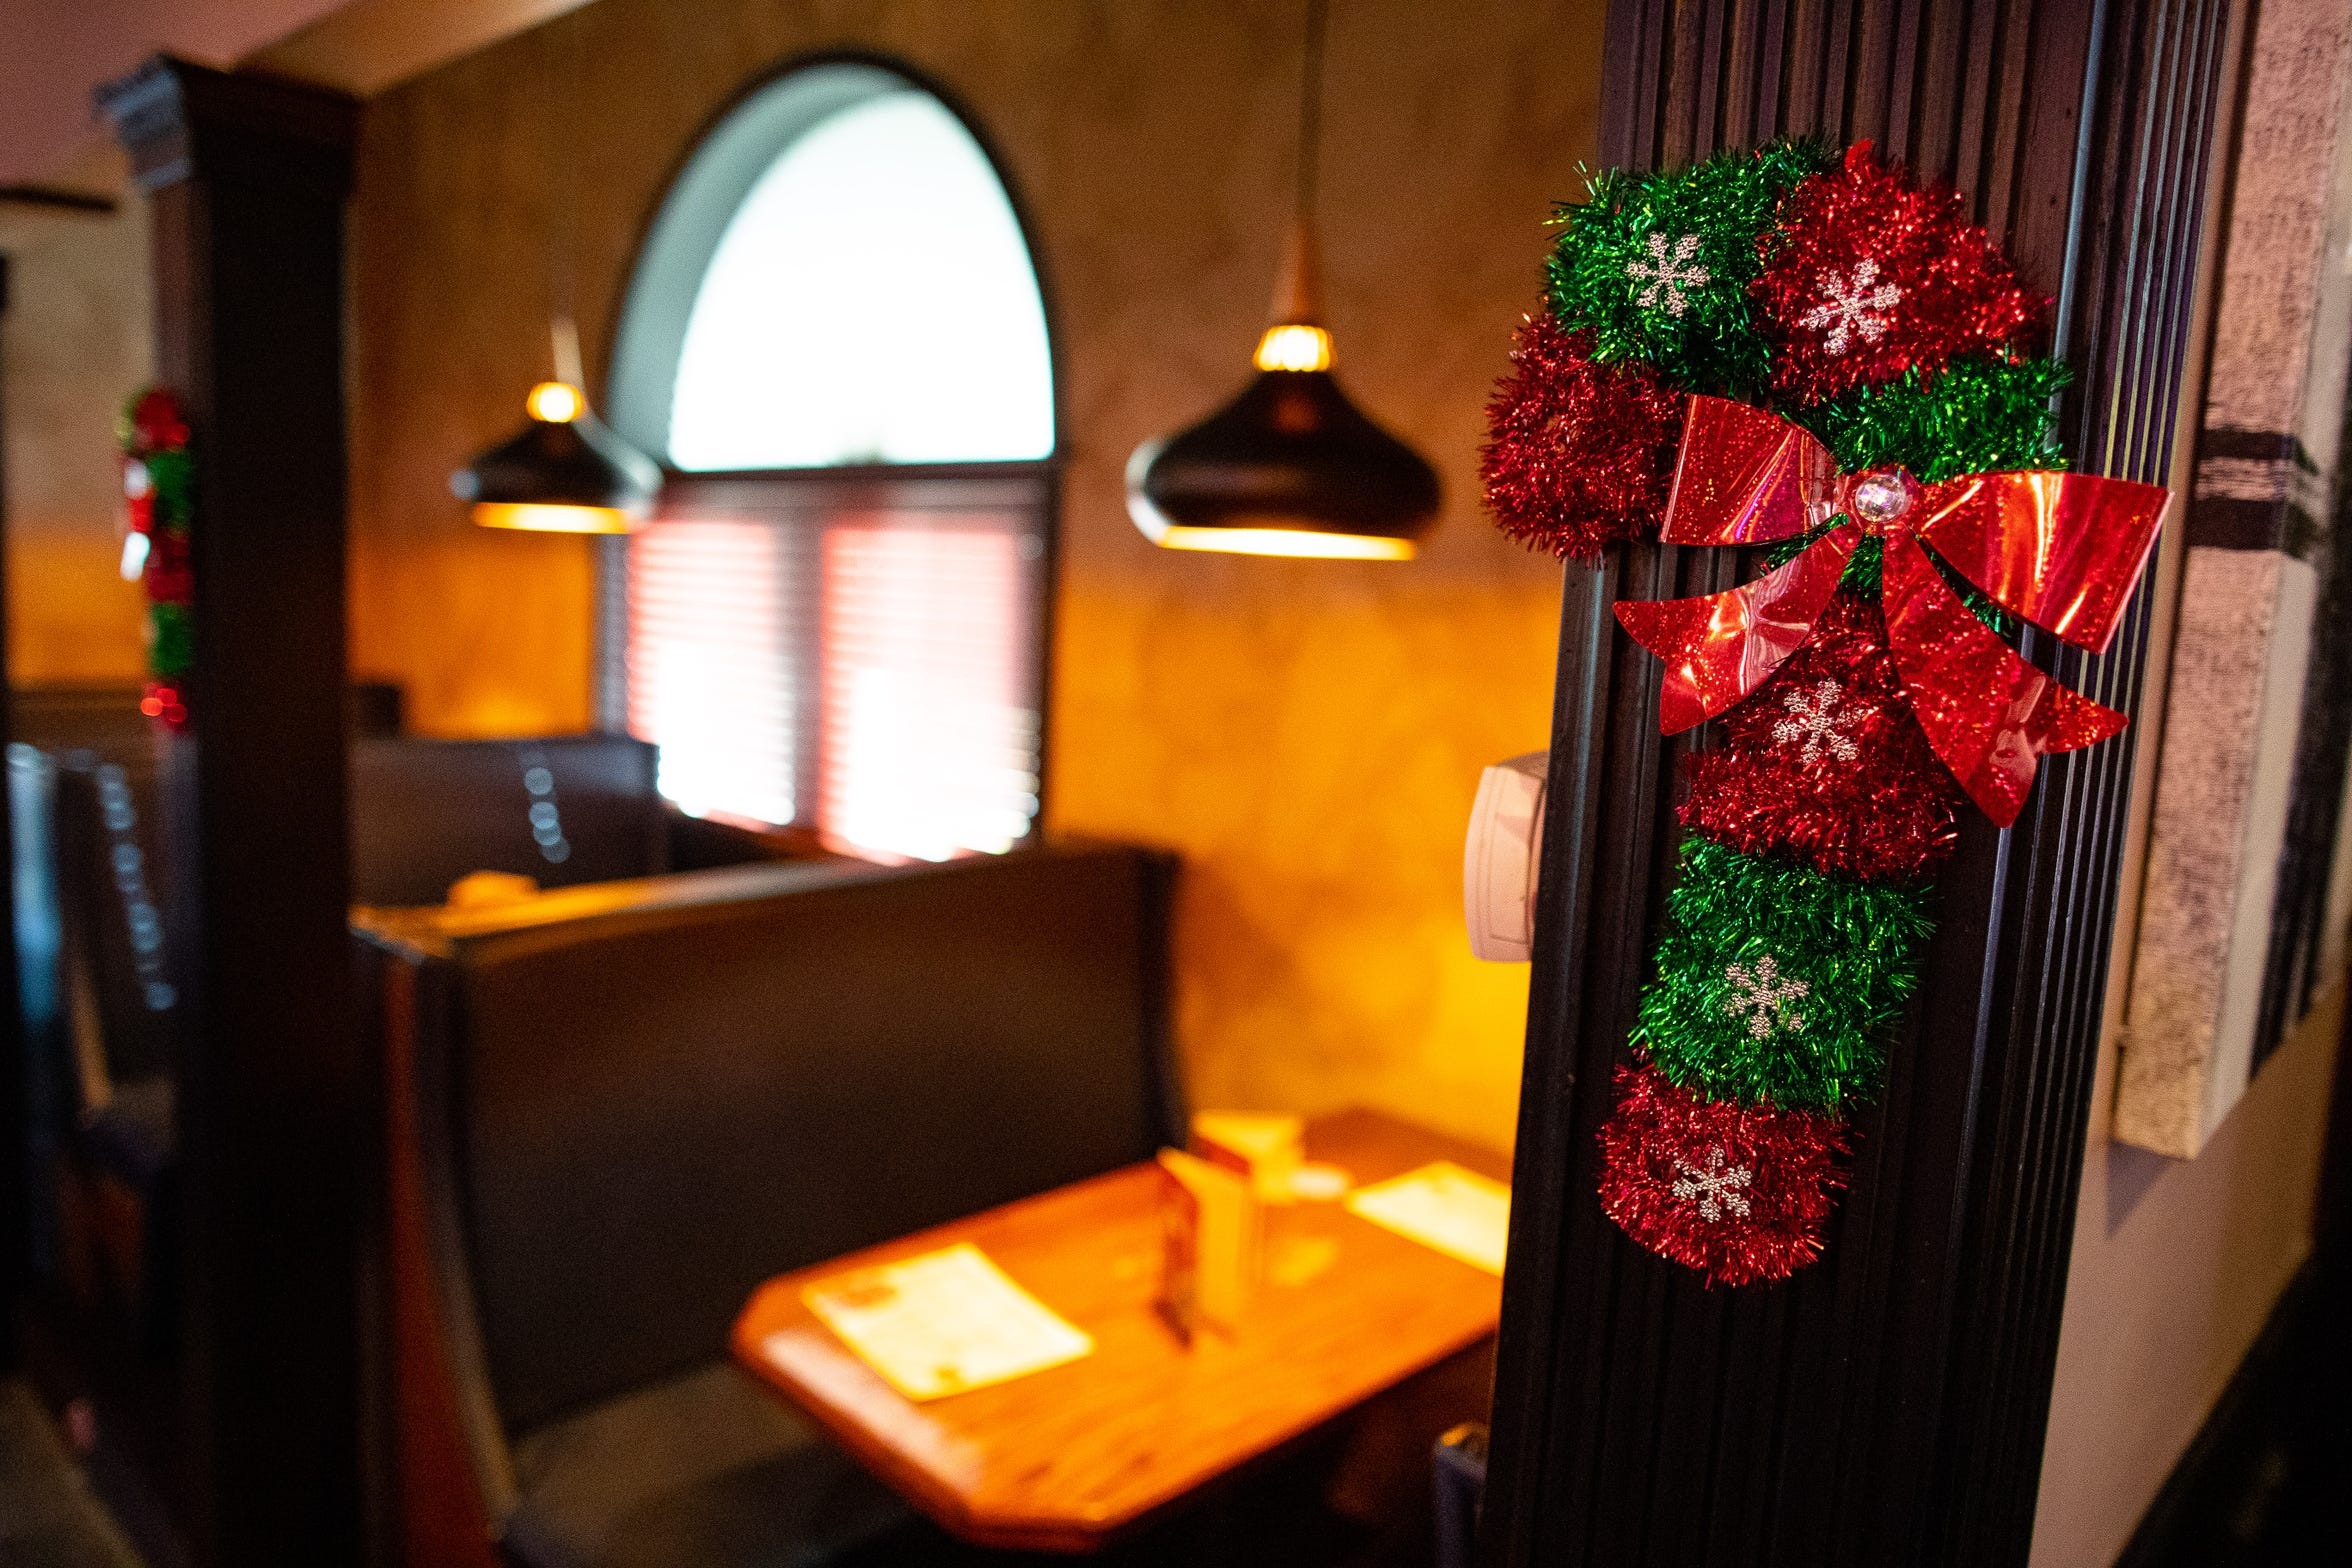 Christmas decorations are on display at Miracle Cocktail Pop-Up Christmas bar at Katz 21.